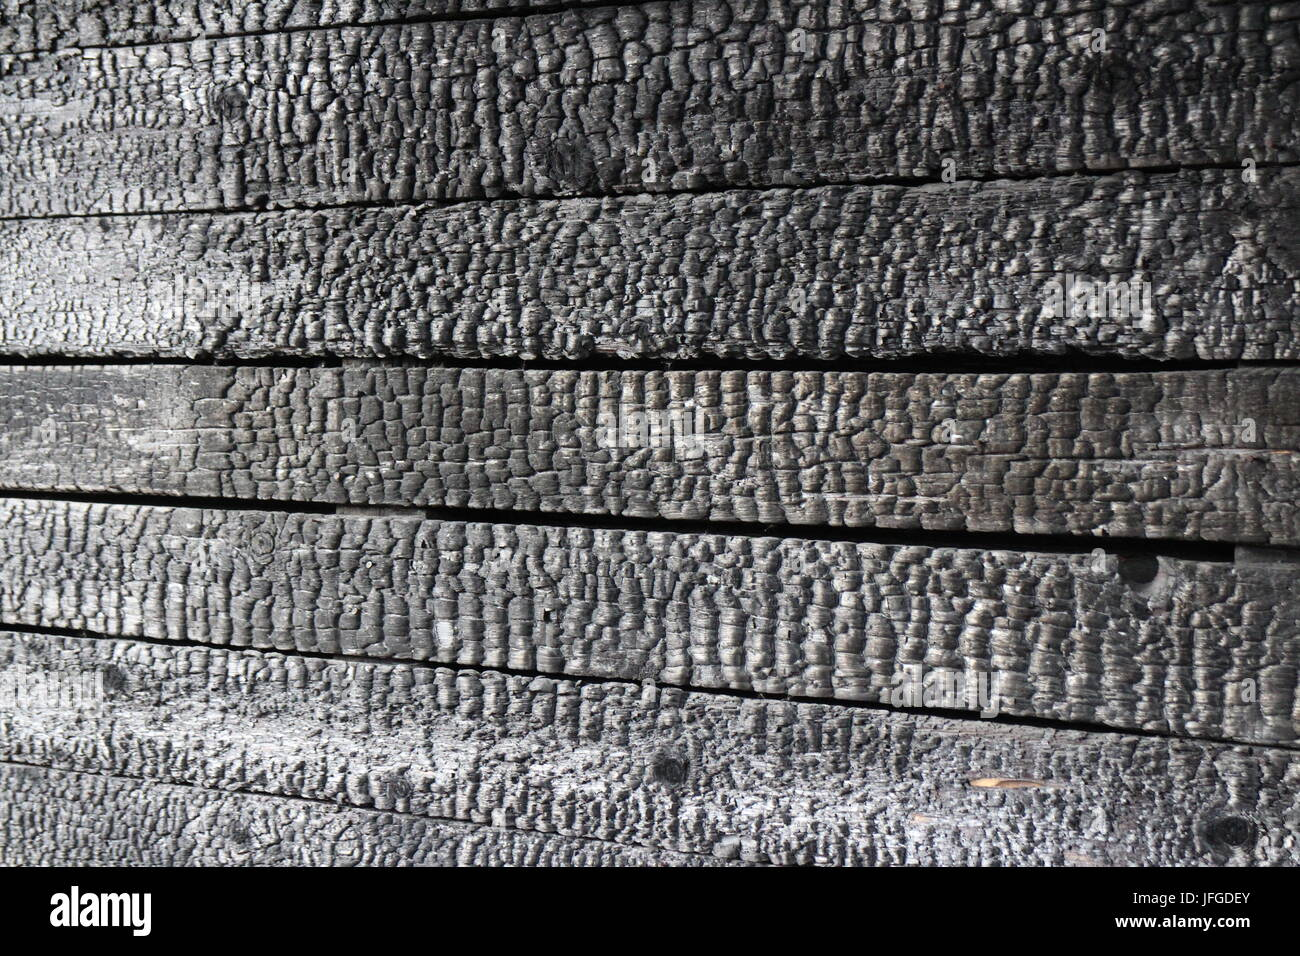 Charred wooden wall after fire arson - Stock Image